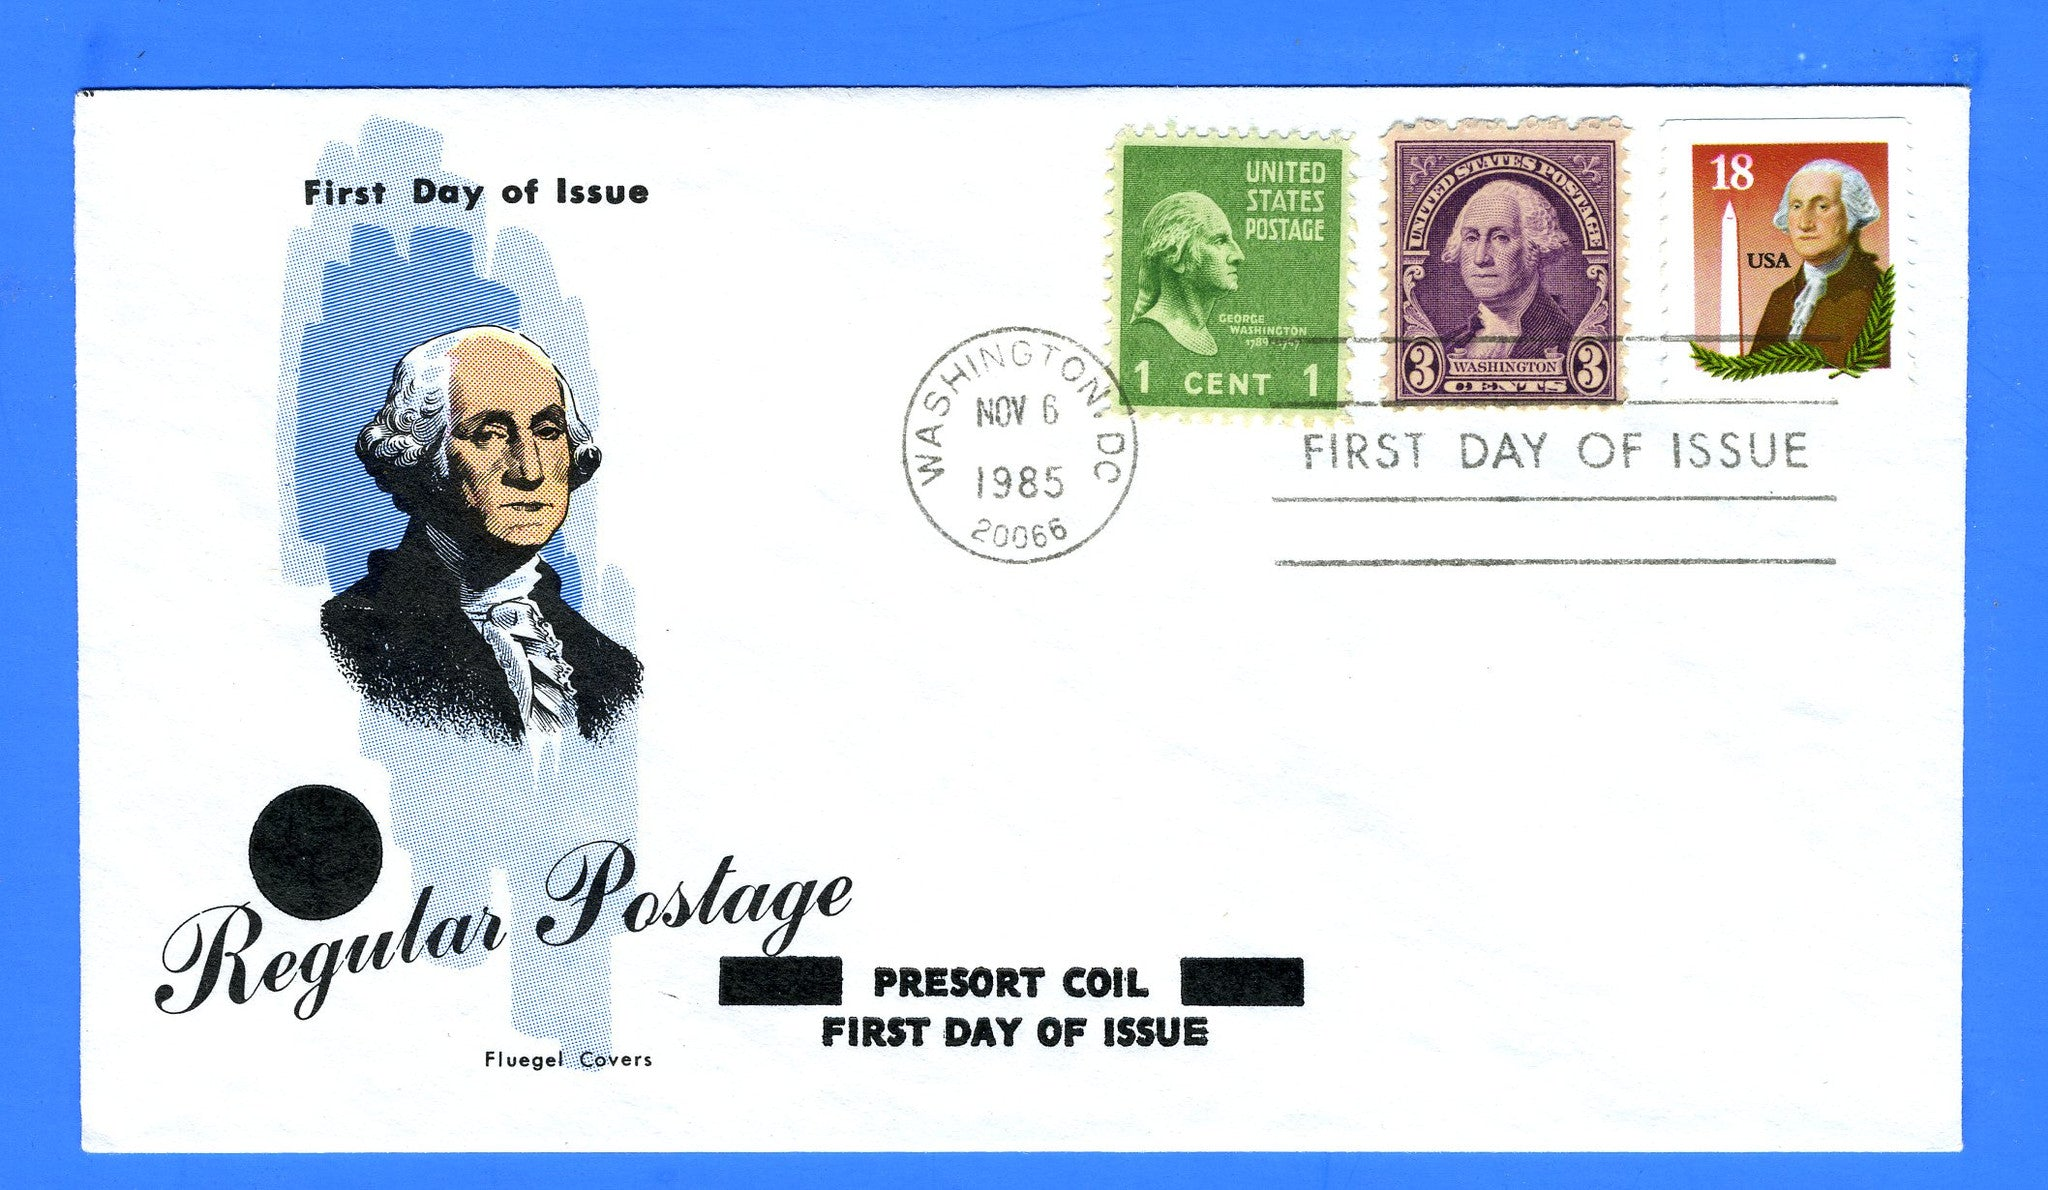 Scott 2149 18c Washington Monument Combo First Day Cover on a Fluegel Cover